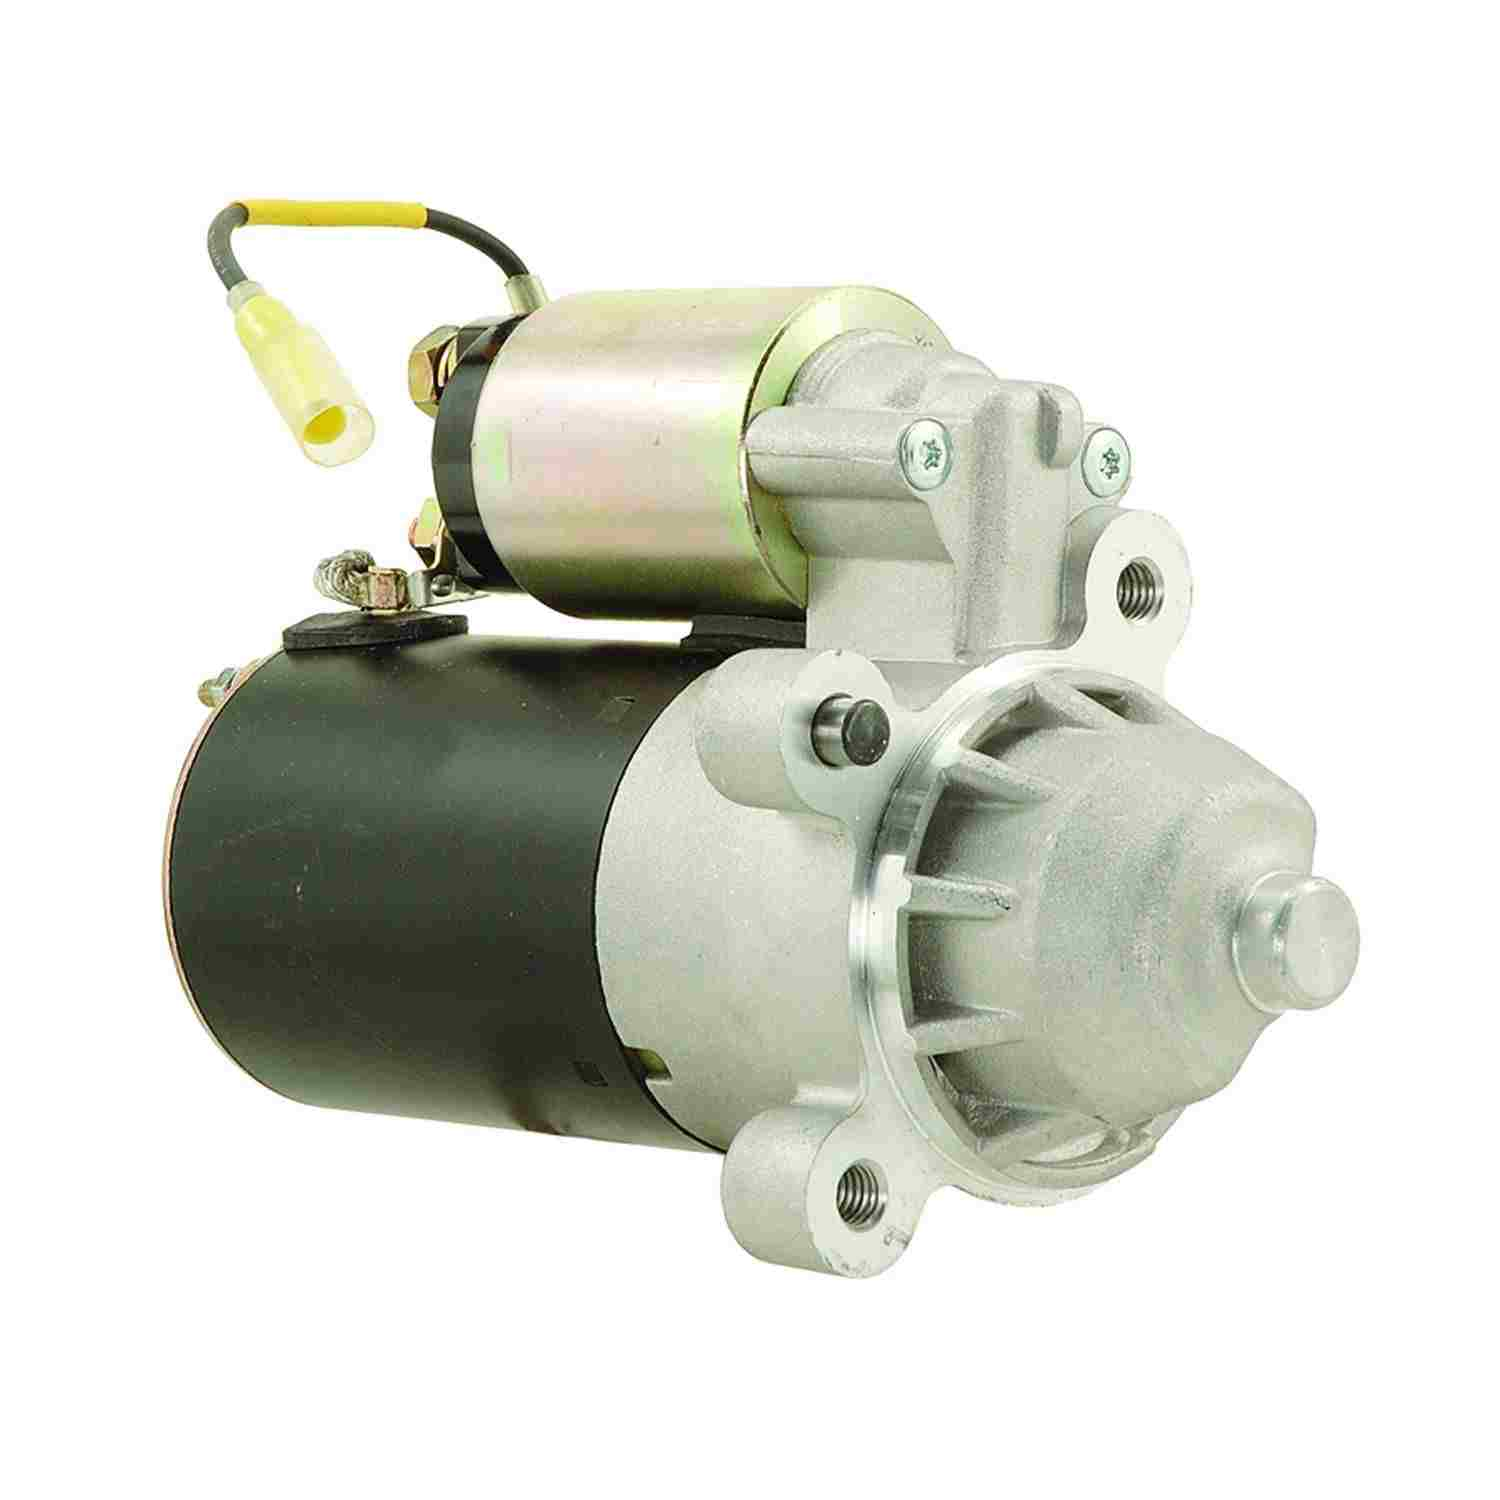 ACDELCO GOLD/PROFESSIONAL - Starter Motor - DCC 337-1052